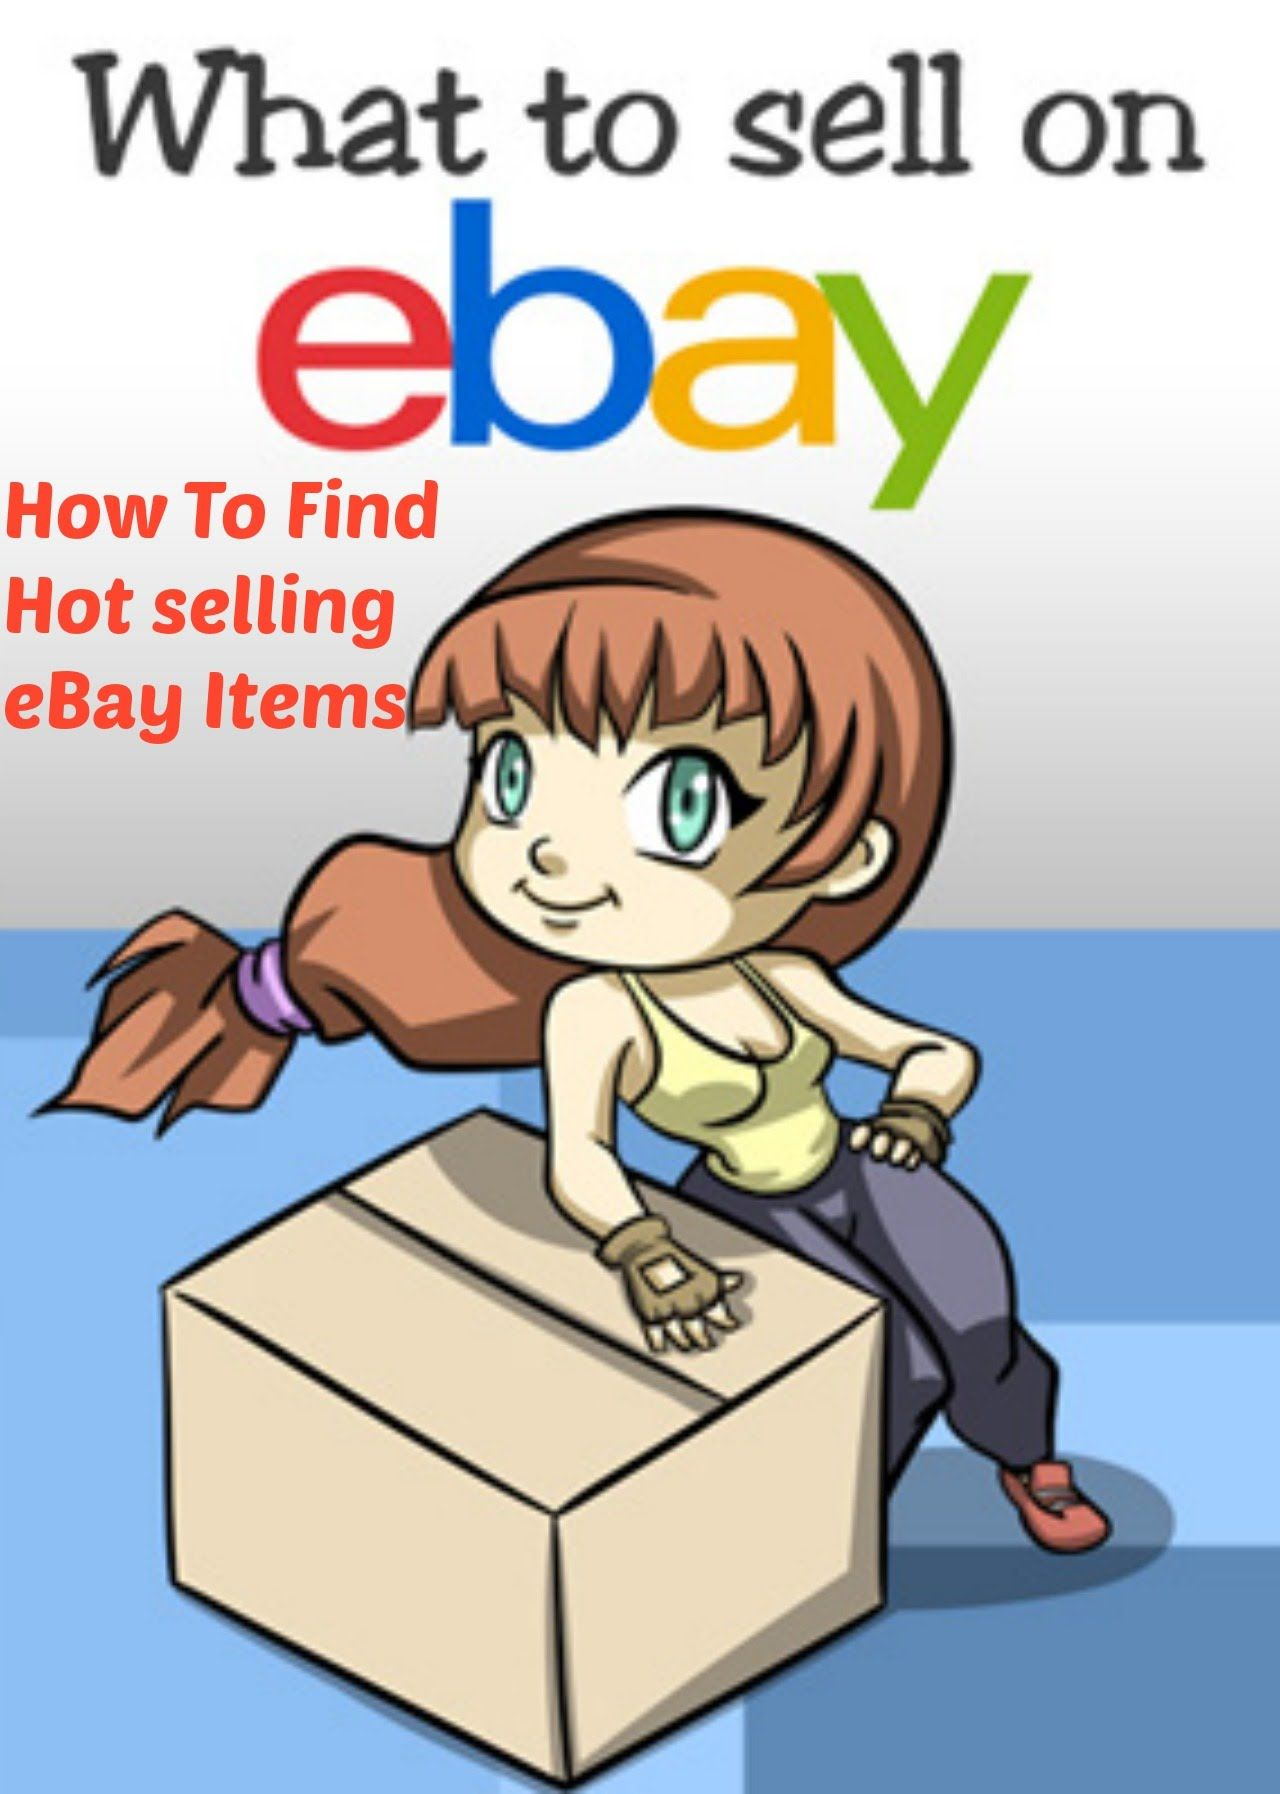 How To Find Hot Selling Items On Ebay Items That Sell Online Ds Domination Training Things To Sell Selling On Ebay Ebay Selling Tips